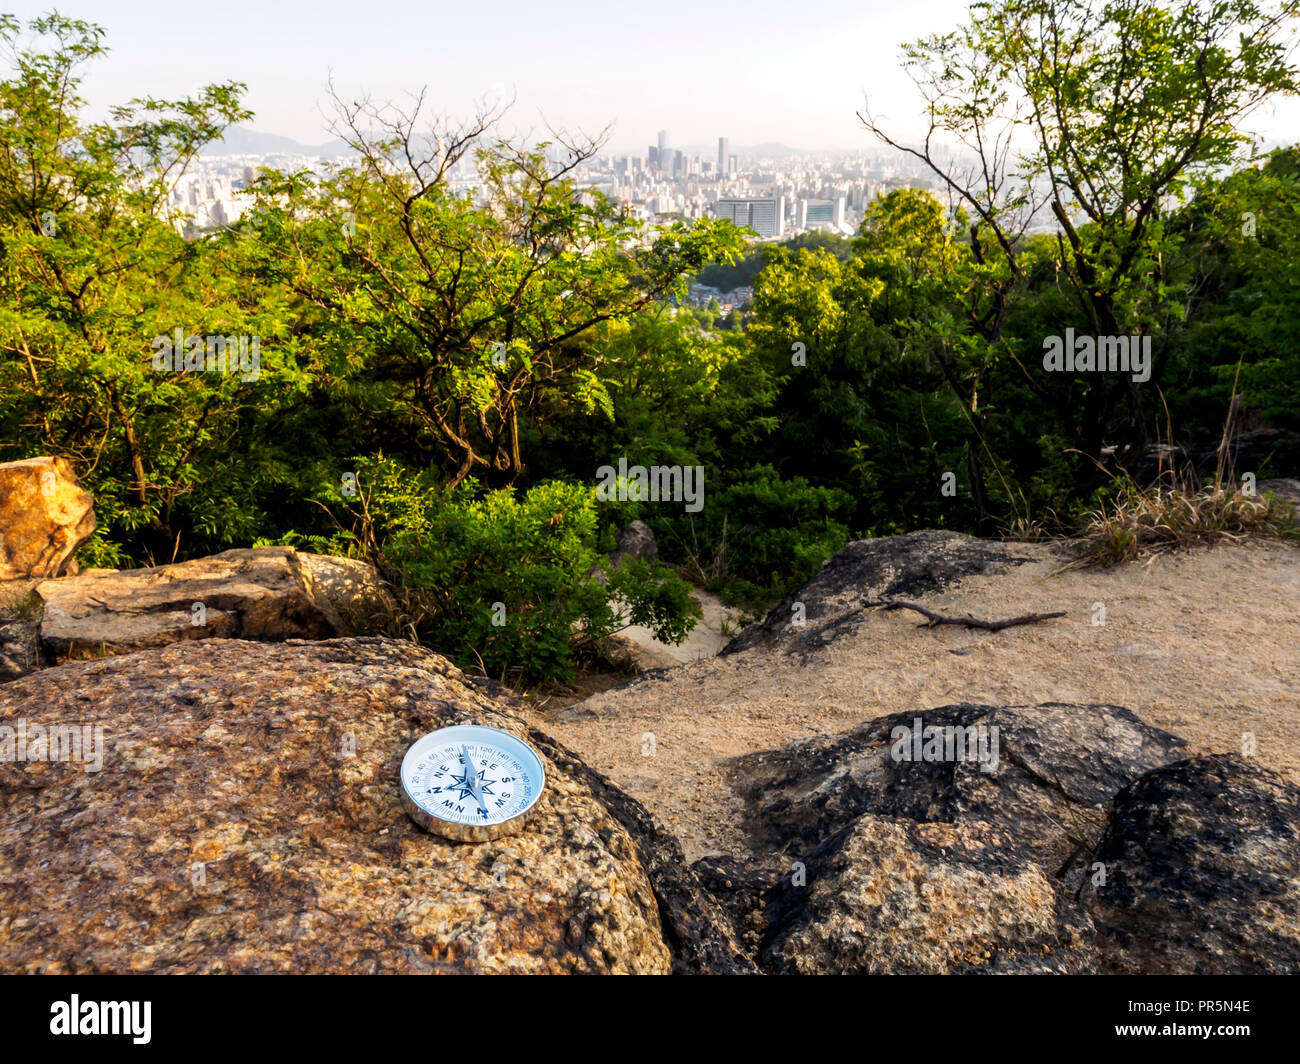 Reliable compass on stone in Seoul, South Korea. Concept for travelling and active lifestyle. - Stock Image